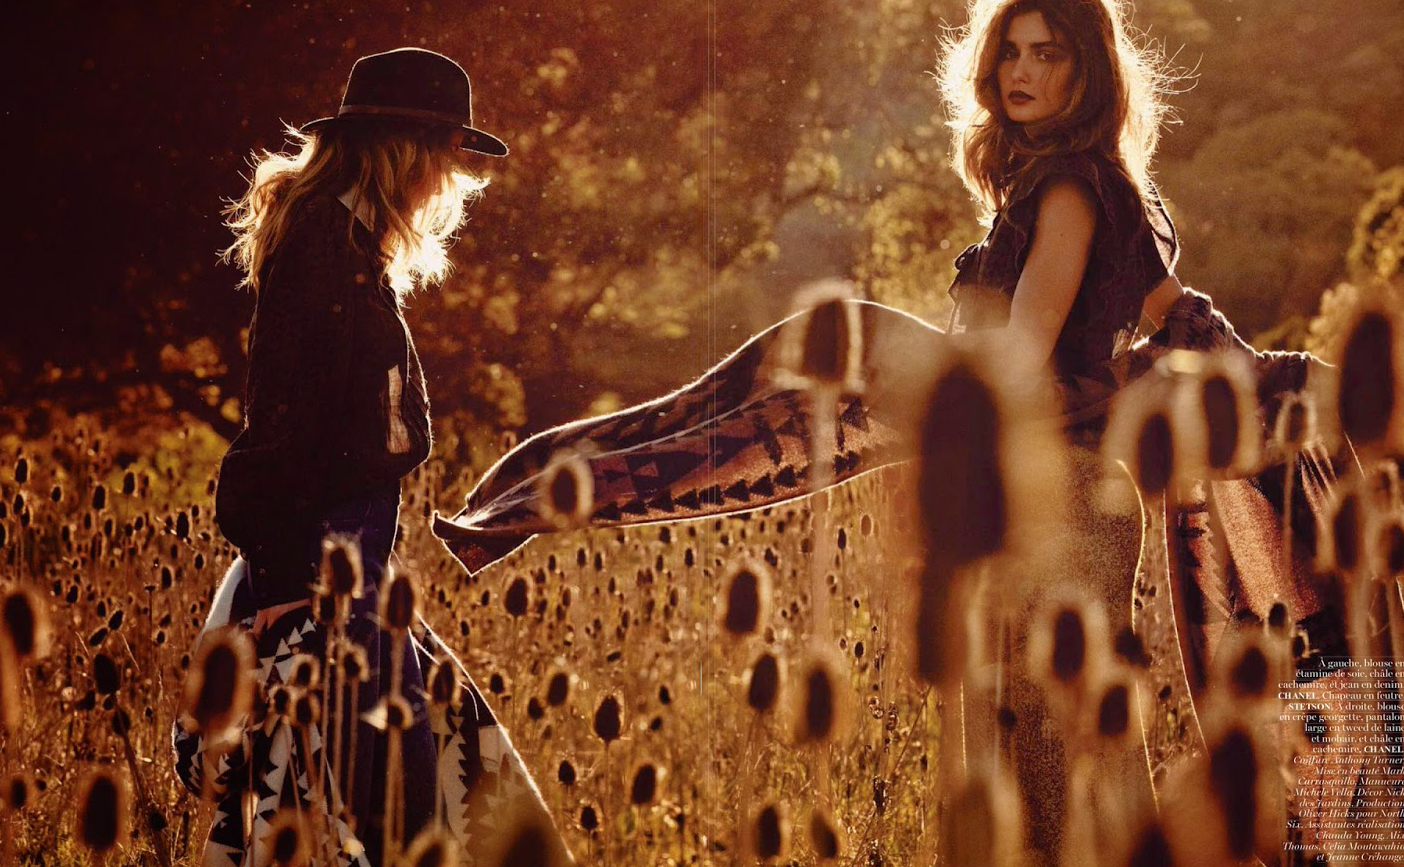 Andreea Diaconu & Edita Vilkeviciute  for Vogue Paris May 2014 (photography: Mikael Jansson, styling: Anastasia Barbieri)